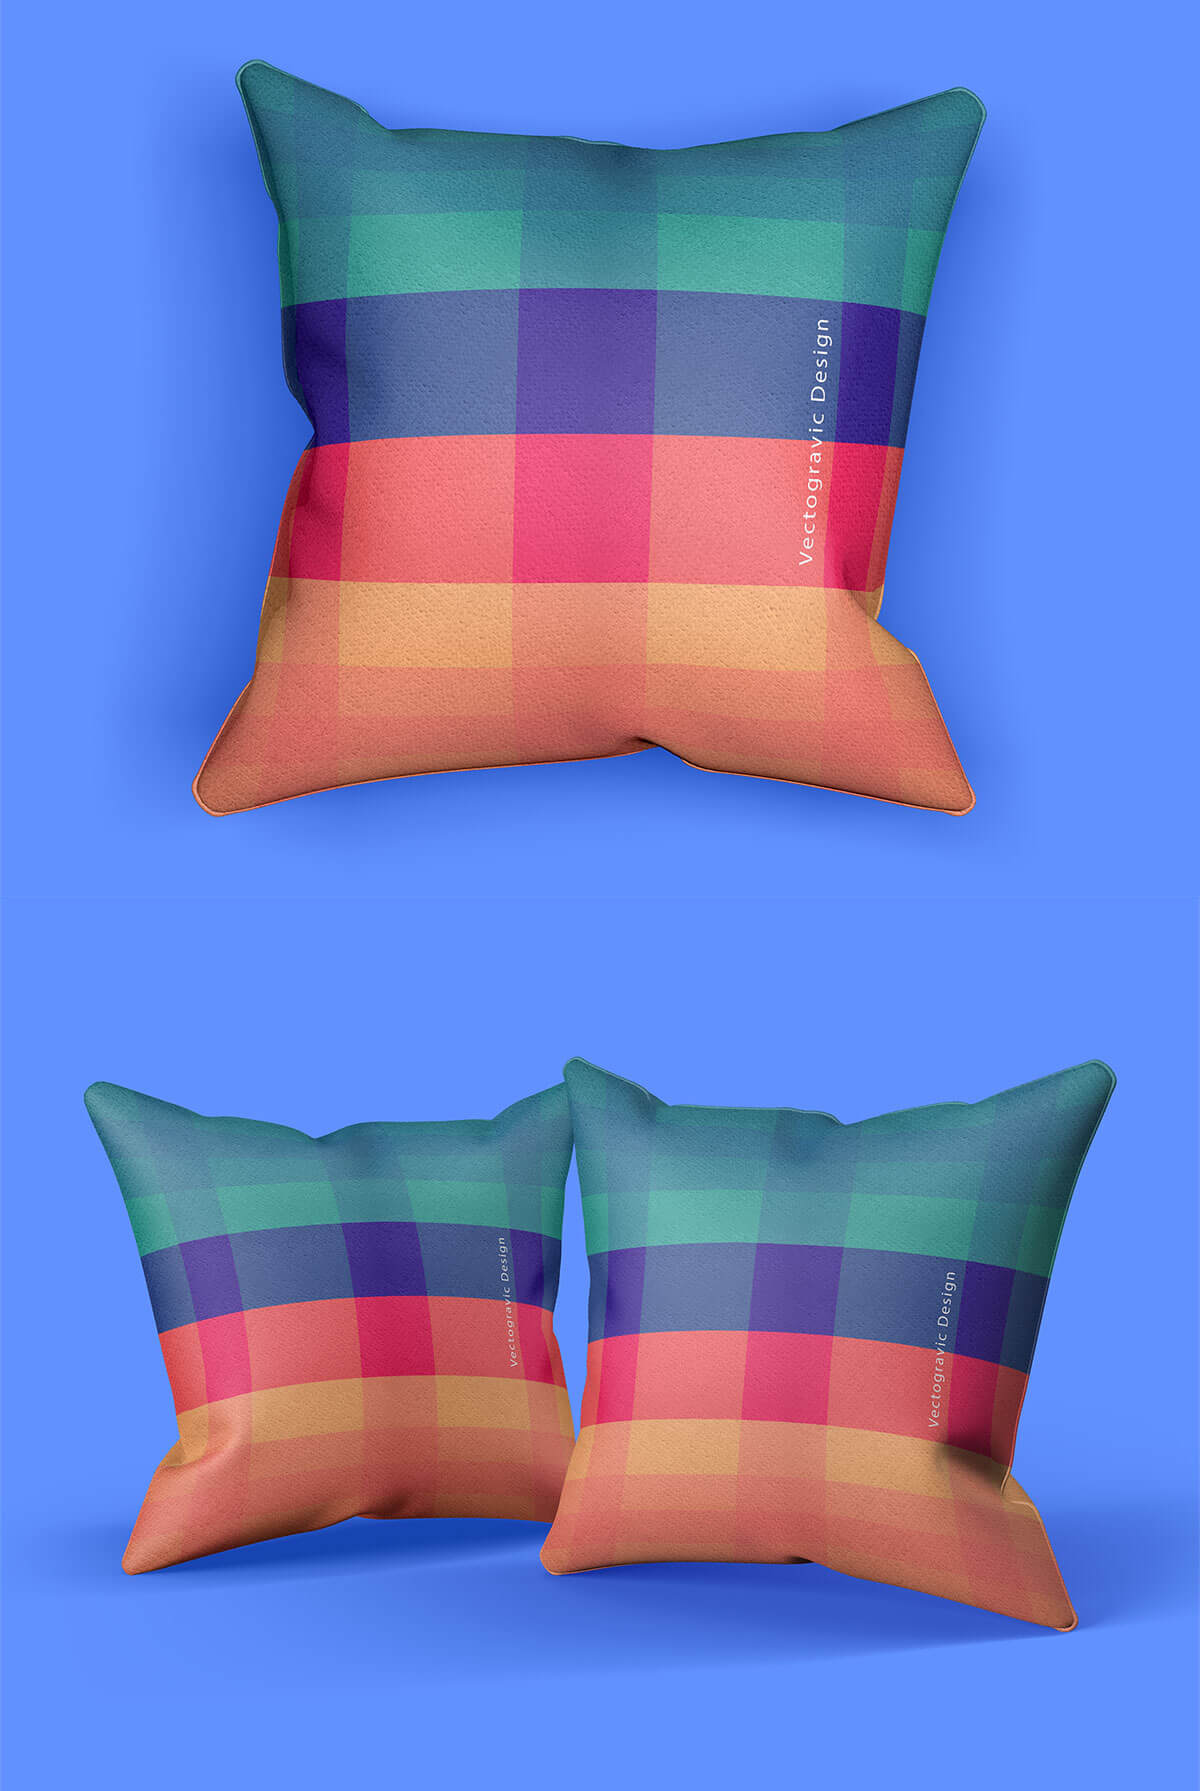 Free Pillow Mockup Pack